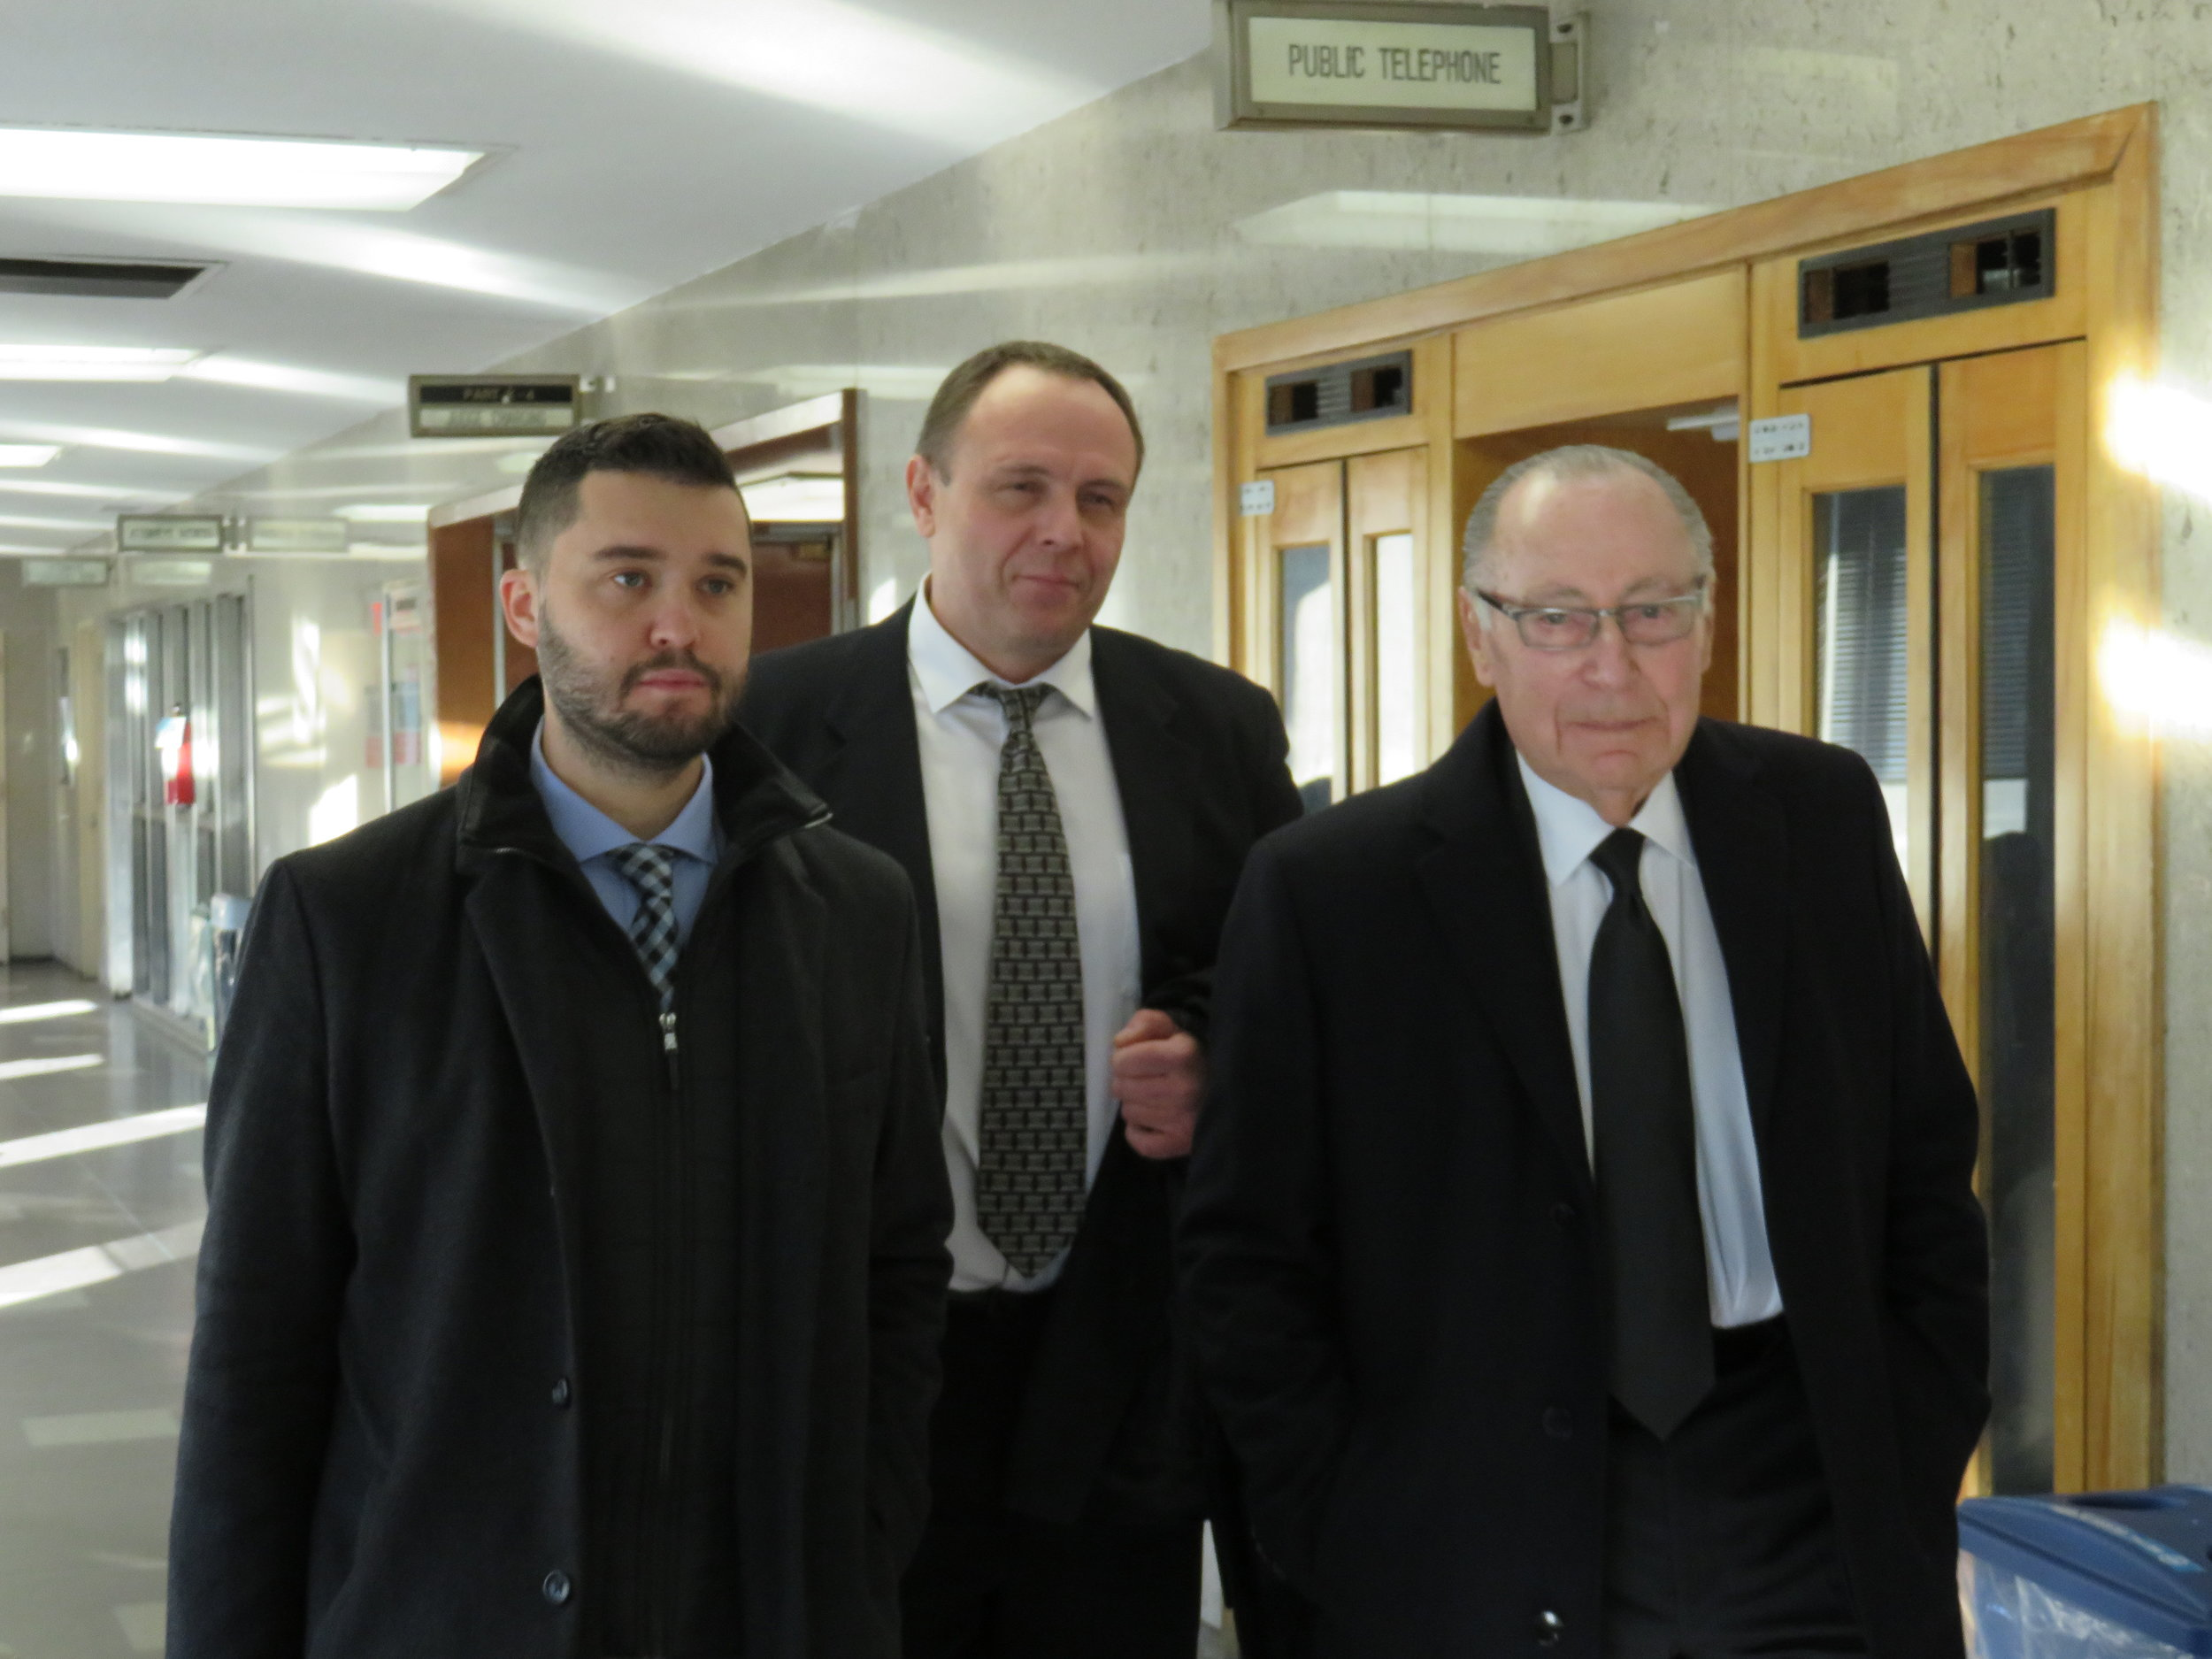 Yuriy Kruk (center) walks through the courthouse with defense attorneys Marvyn Kornberg (right) and Dmitriy Shakhnevich (left) after Justice Richard Buchter acquitted him at a bench trial.  Eagle  photo by David Brand.